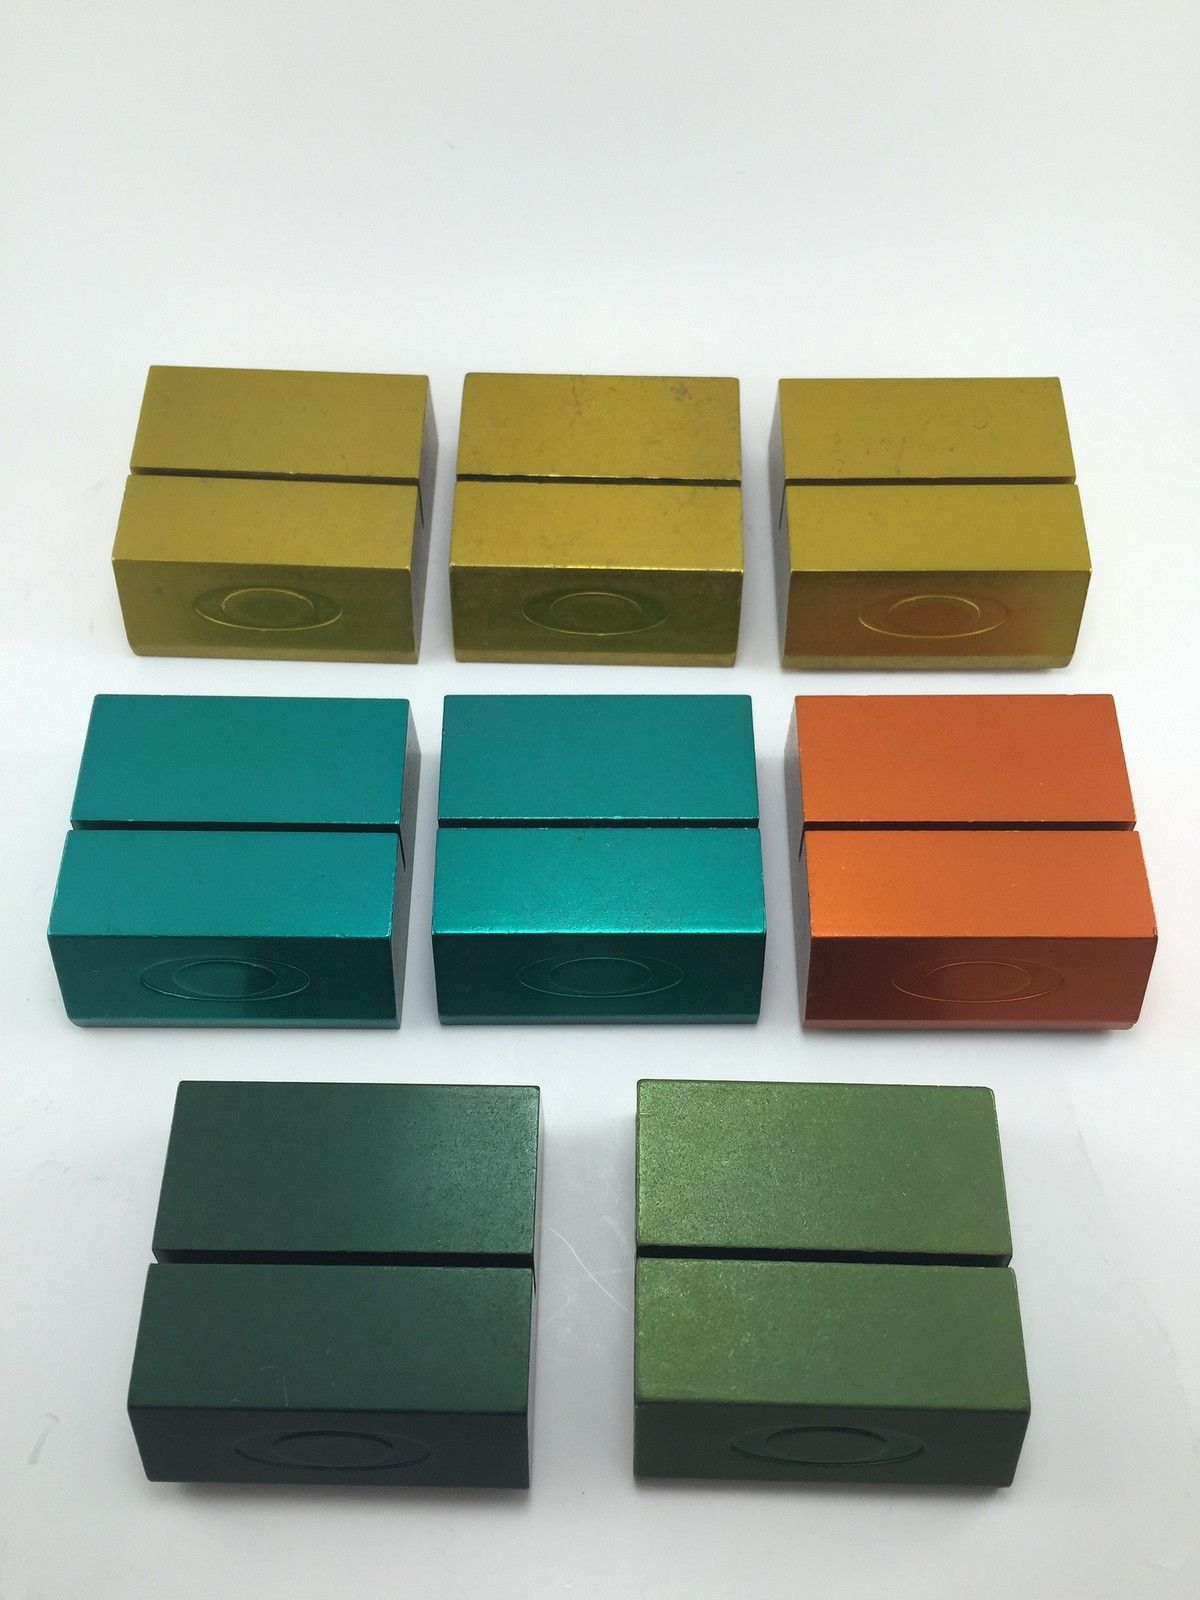 Anodized coin/card/pop holders (set of 8) - 16490614396_1d89b6f567_k.jpg